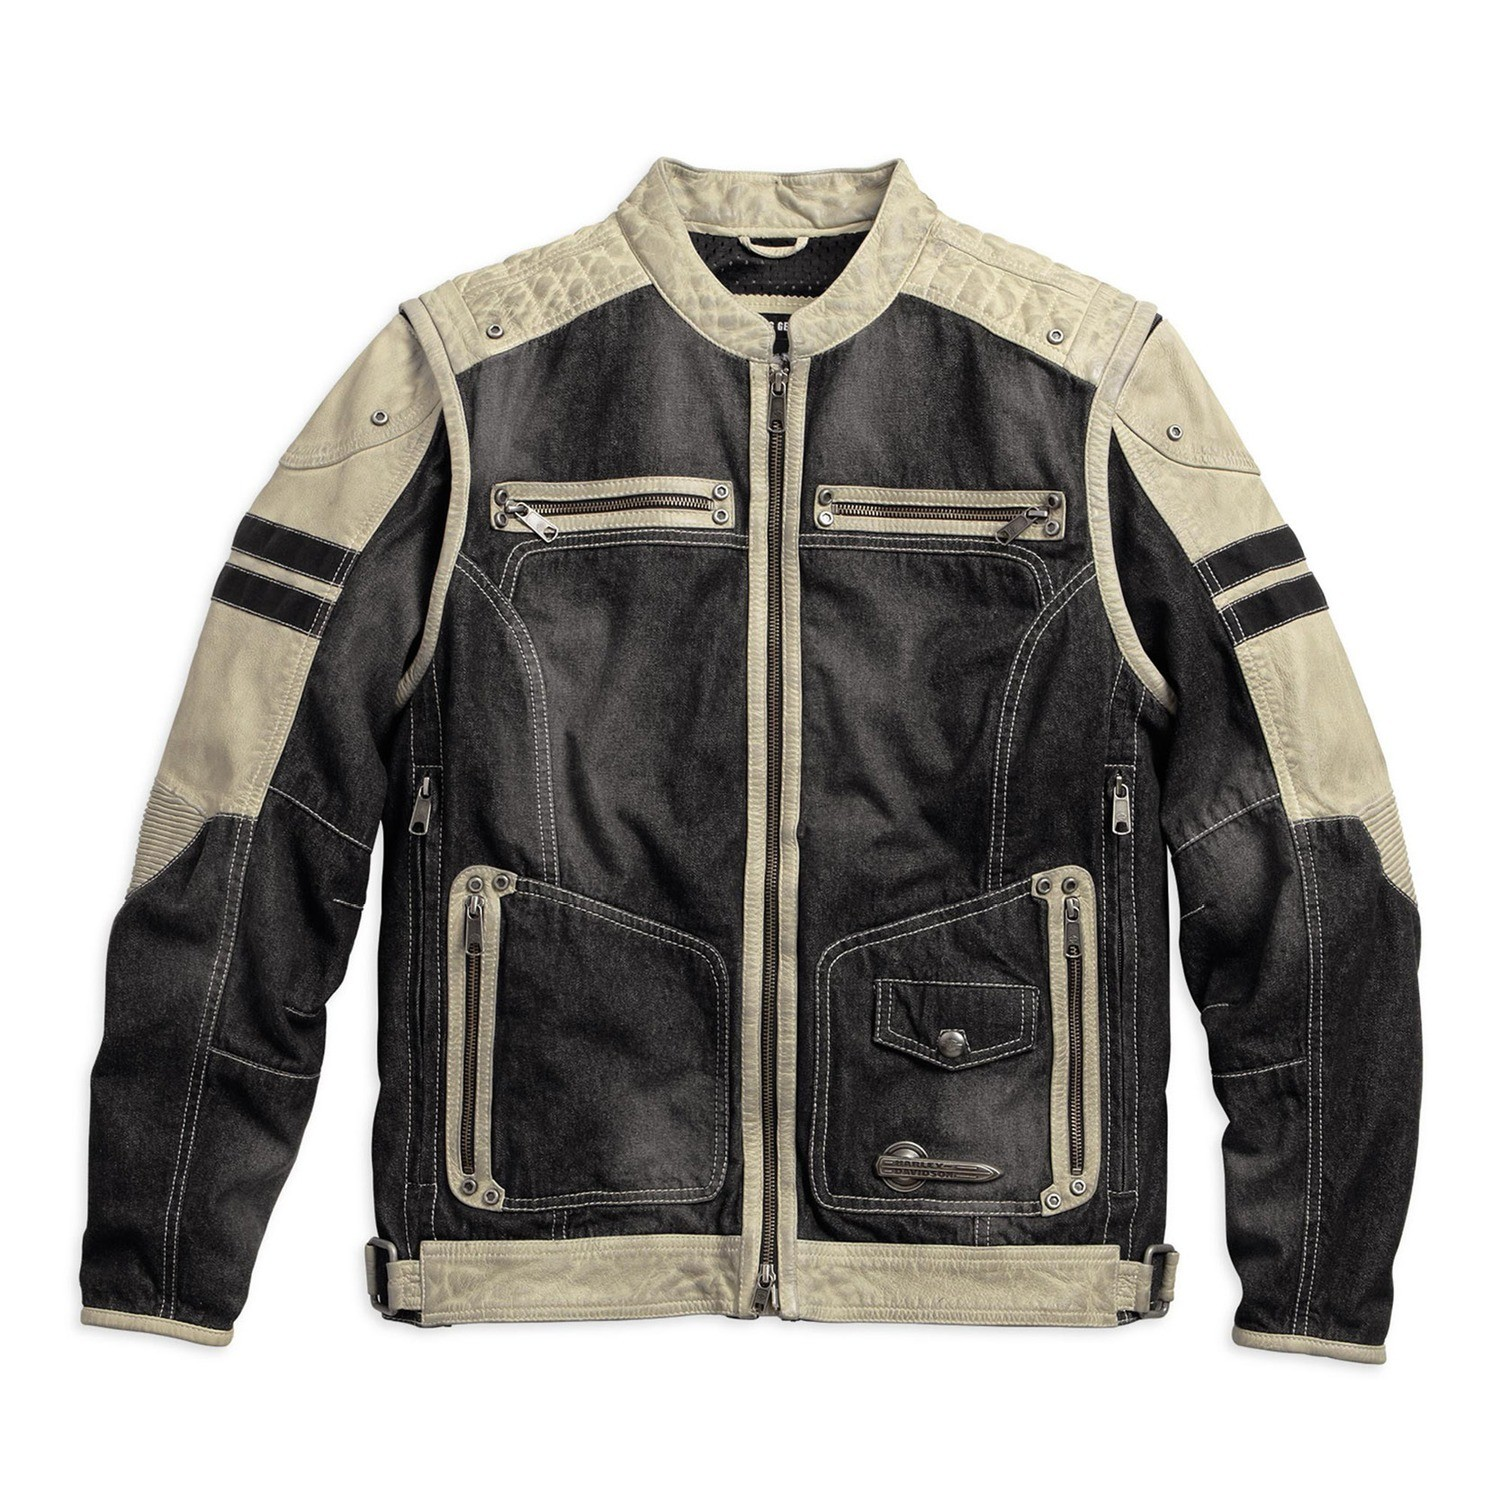 Knave Textile/Leather Riding Jacket Men